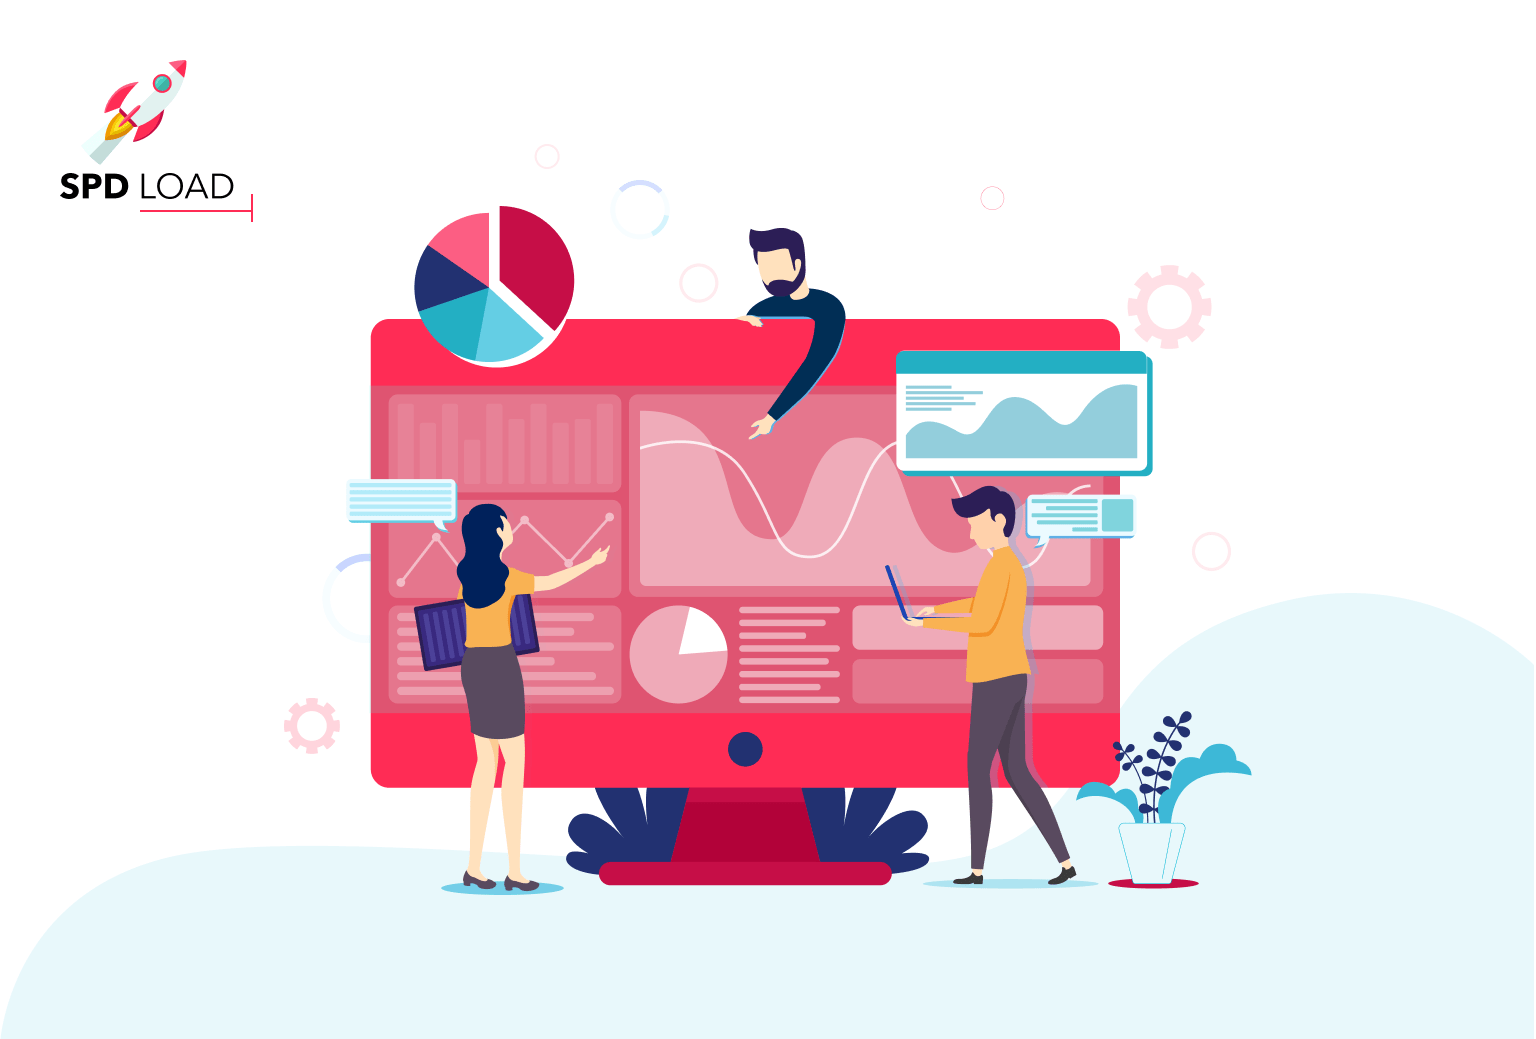 The team of SpdLoad prepared an ultimate guide on how much does it cost to build a website for a small business.